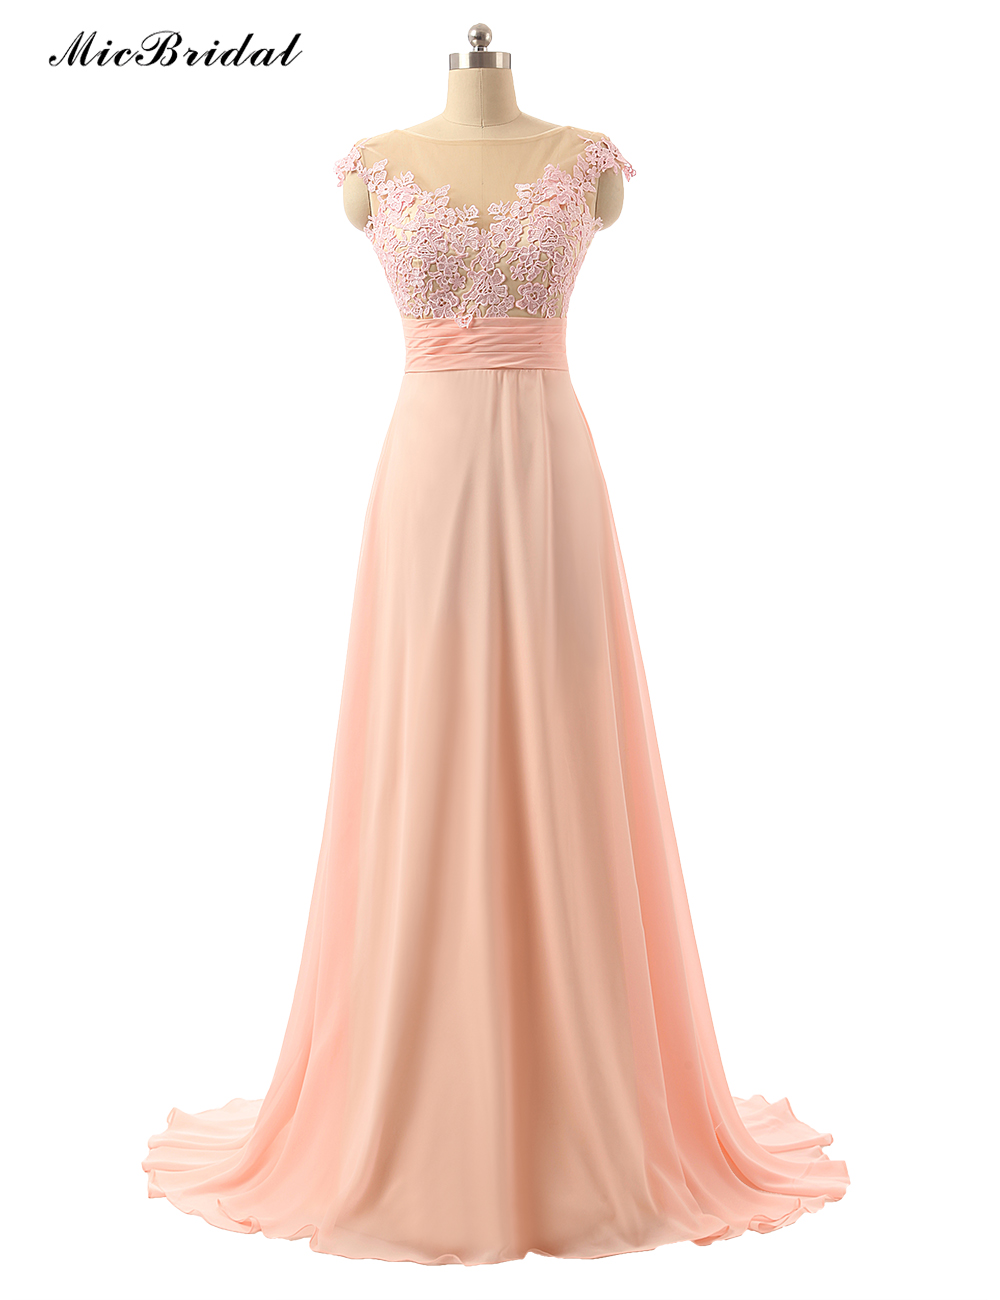 Micbridal cheap a line blush bridesmaid dress 2016 long for Cheap wedding dresses for guests